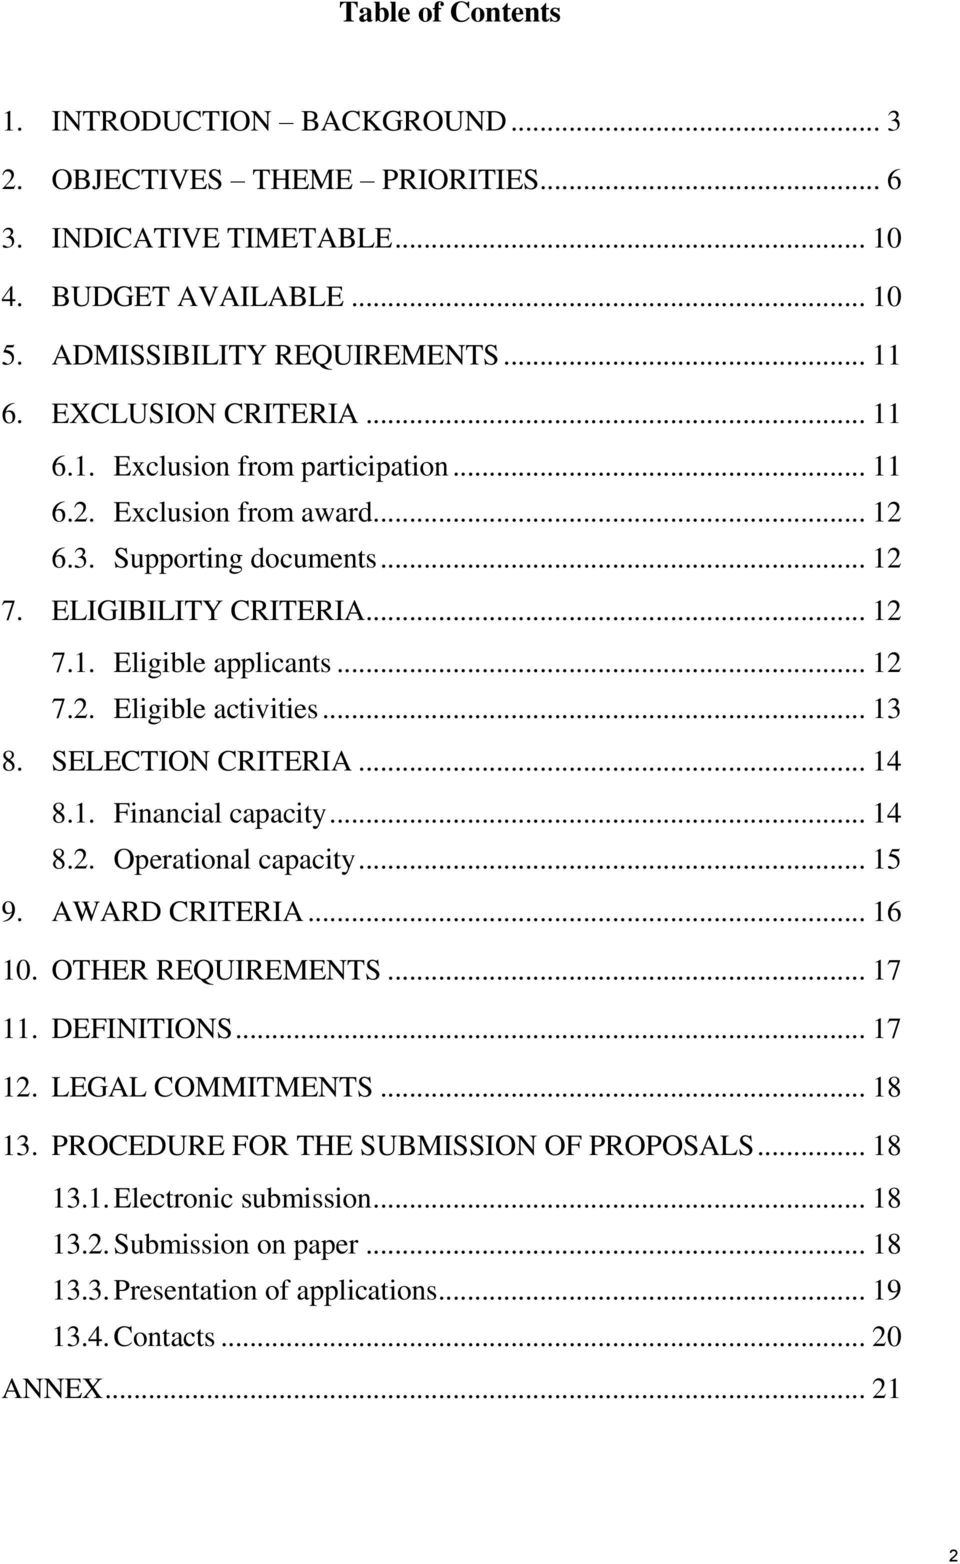 .. 13 8. SELECTION CRITERIA... 14 8.1. Financial capacity... 14 8.2. Operational capacity... 15 9. AWARD CRITERIA... 16 10. OTHER REQUIREMENTS... 17 11. DEFINITIONS... 17 12. LEGAL COMMITMENTS.